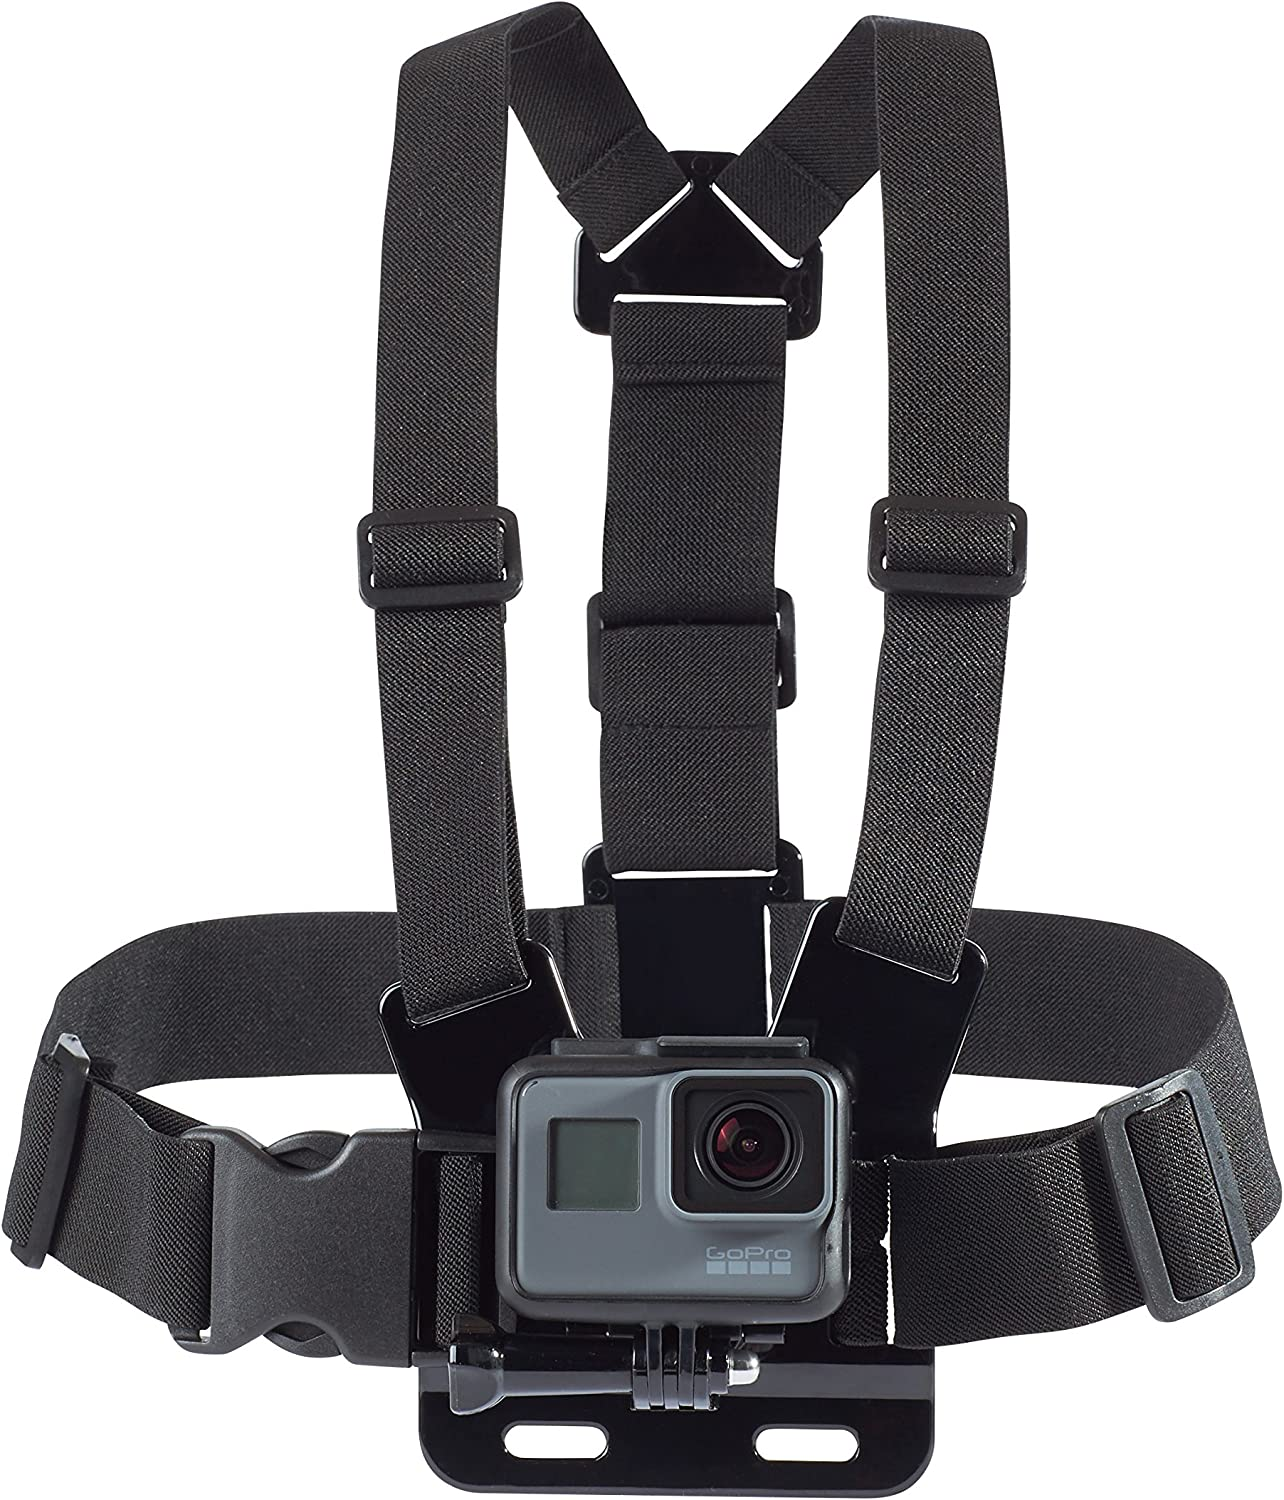 AmazonBasics Chest Mount Harness for GoPro Camera - Black